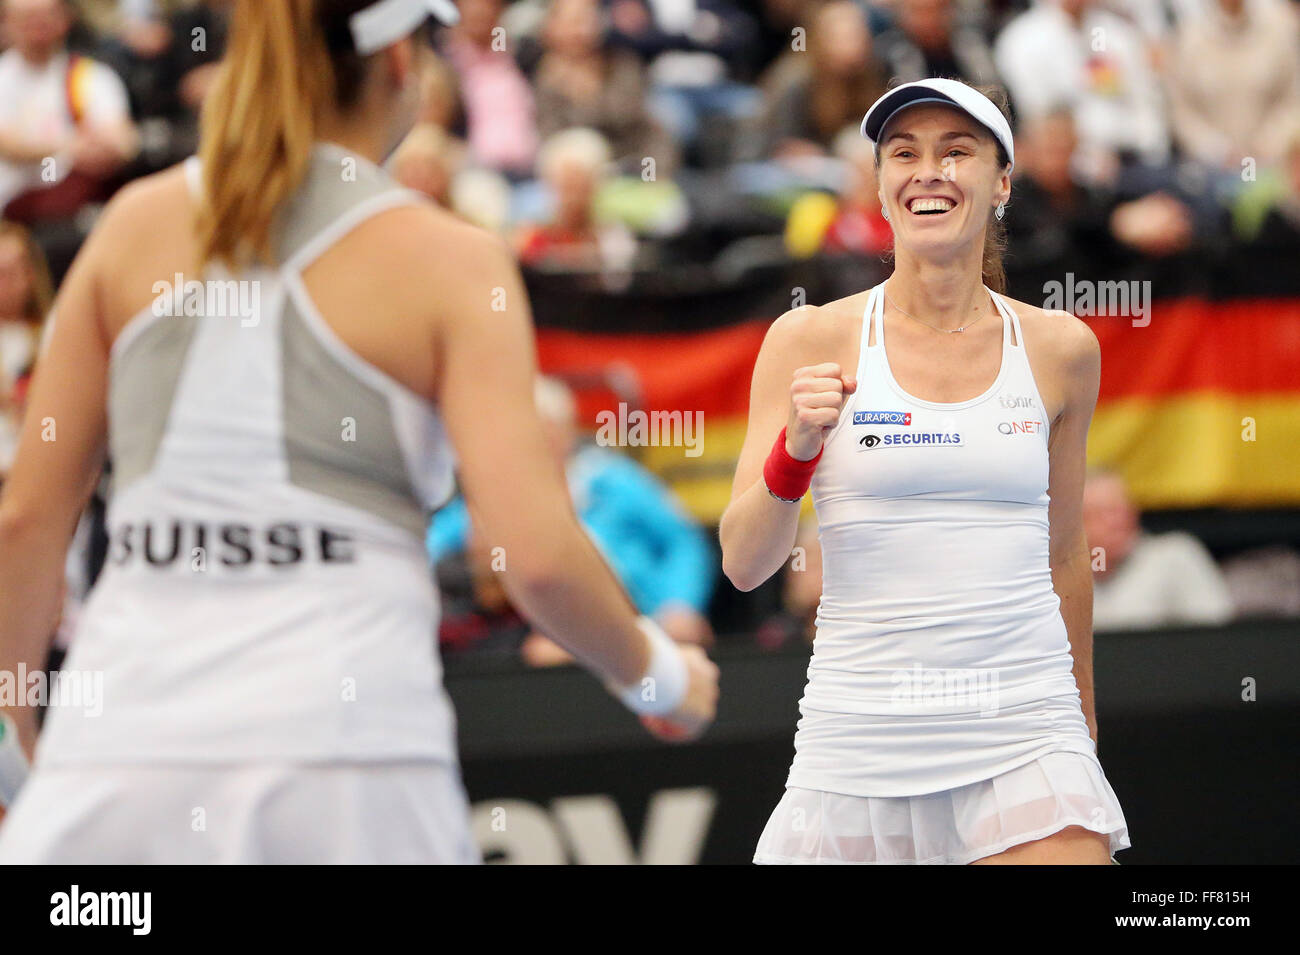 Leipzig, Germany. 07th Feb, 2016. Martina Hingis (R) and Belinda Bencic of Switzerland celebrate after winning their - Stock Image